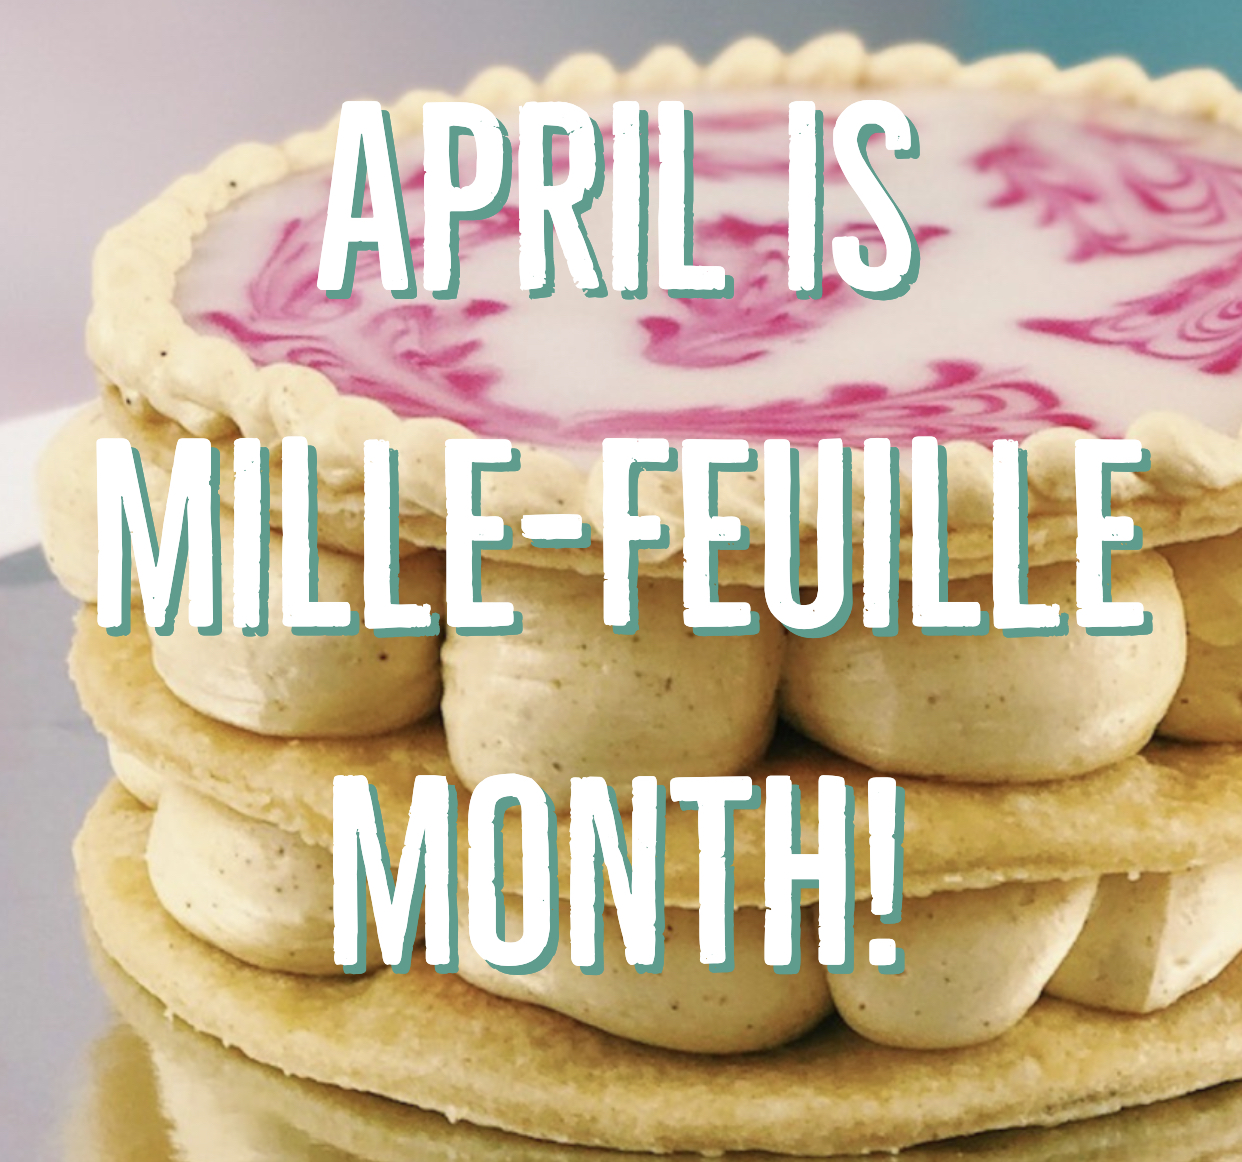 April - Mille-Feuille.jpg